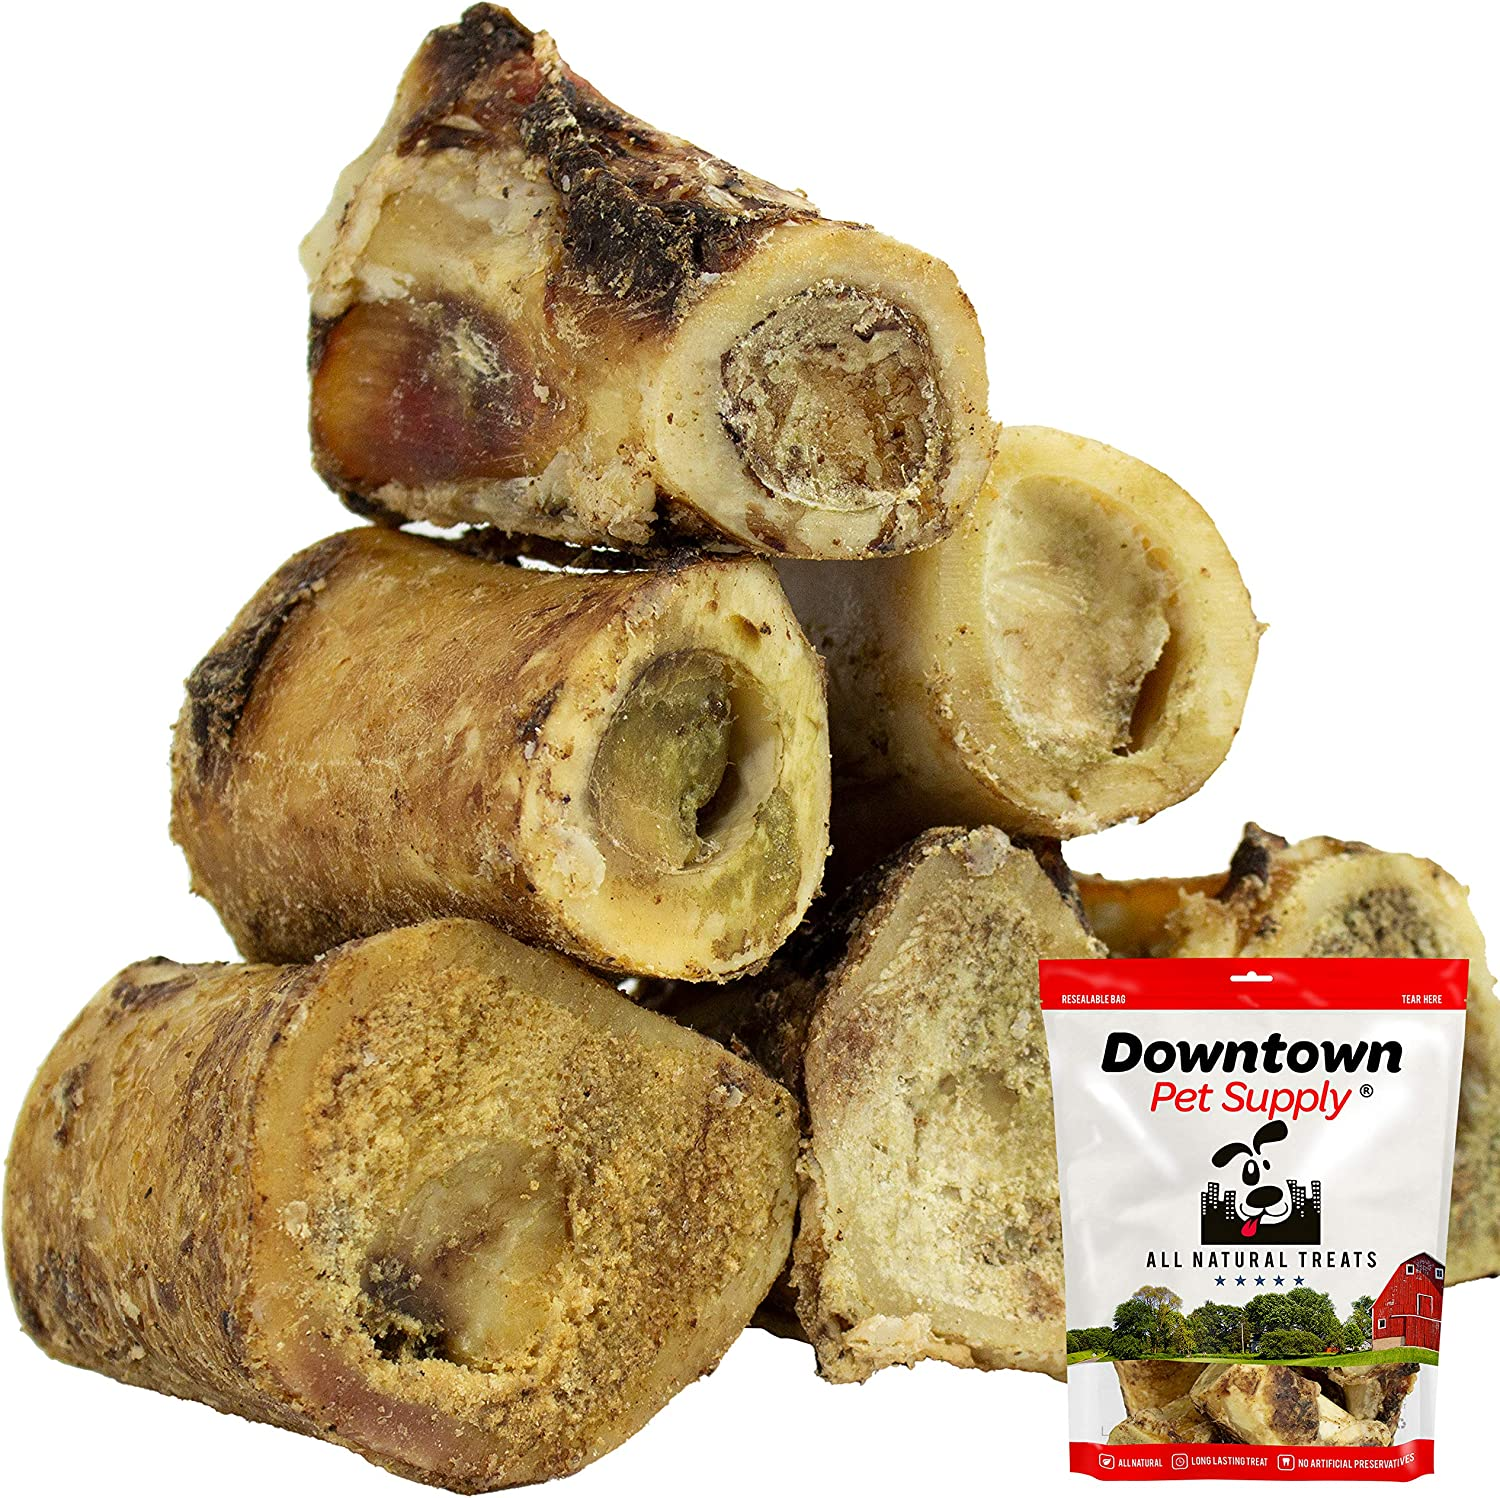 Downtown Pet Supply Premium 3 and 5 Inch USA Beef Marrow Stuffed and Plain Dog Bone, Long Lasting Meaty Chew Treat for Dogs, Aggressive Chewers (4 Pack, 8 Pack, 12 Pack)